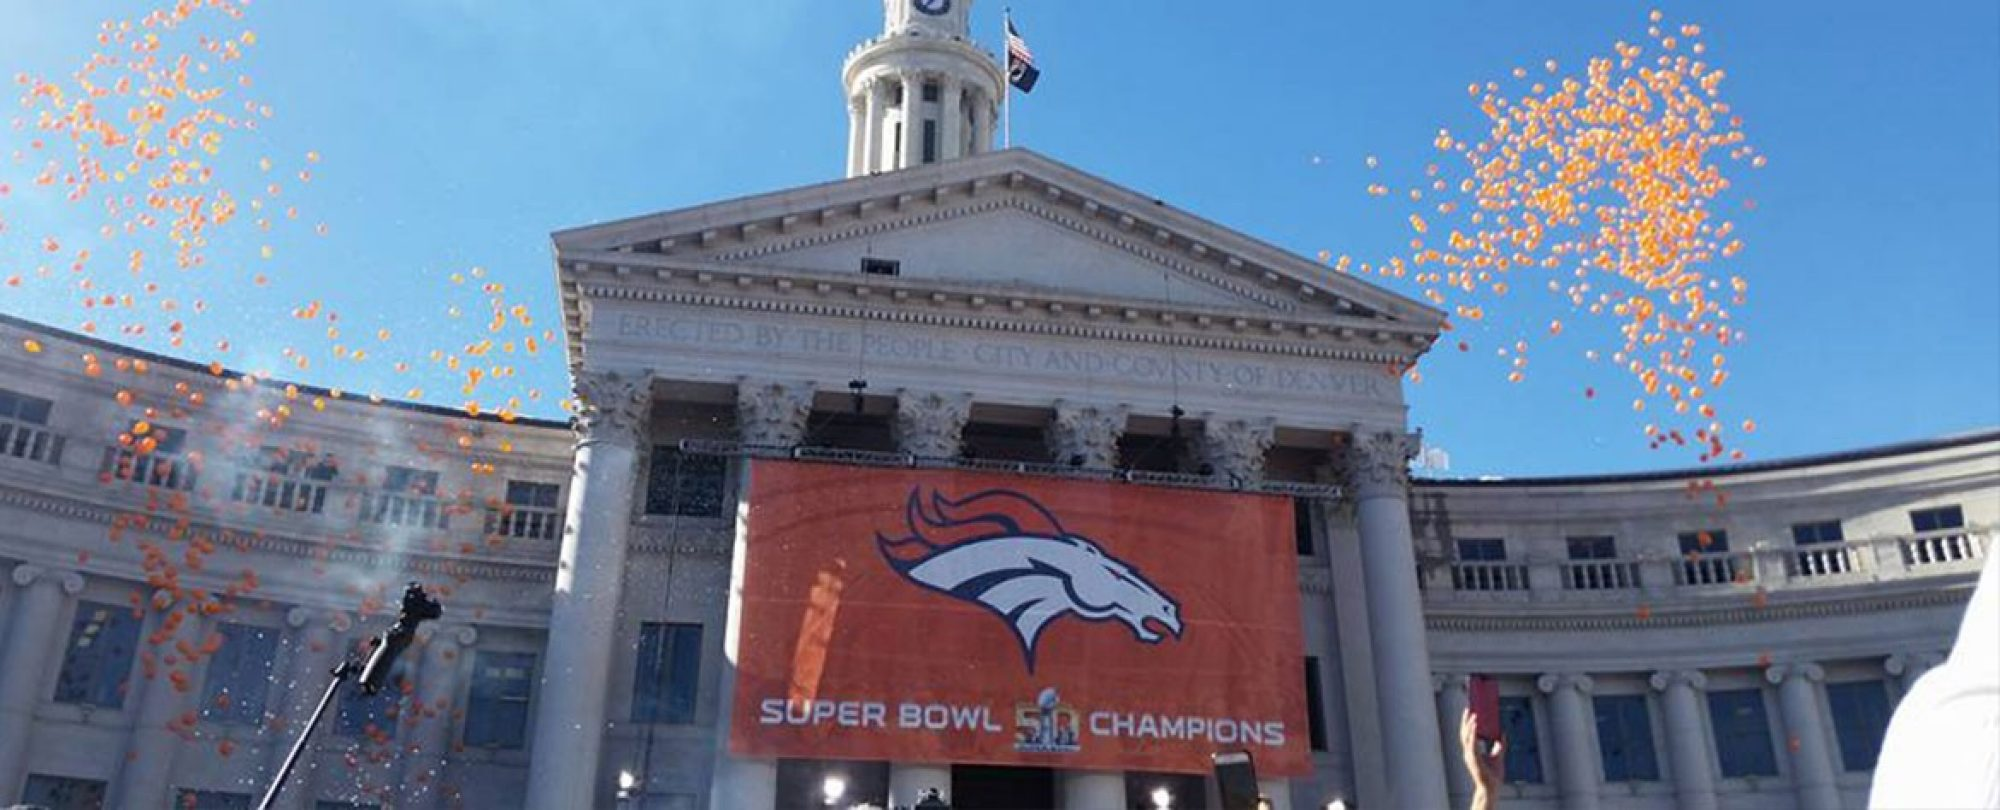 Denver Broncos Superbowl Parade